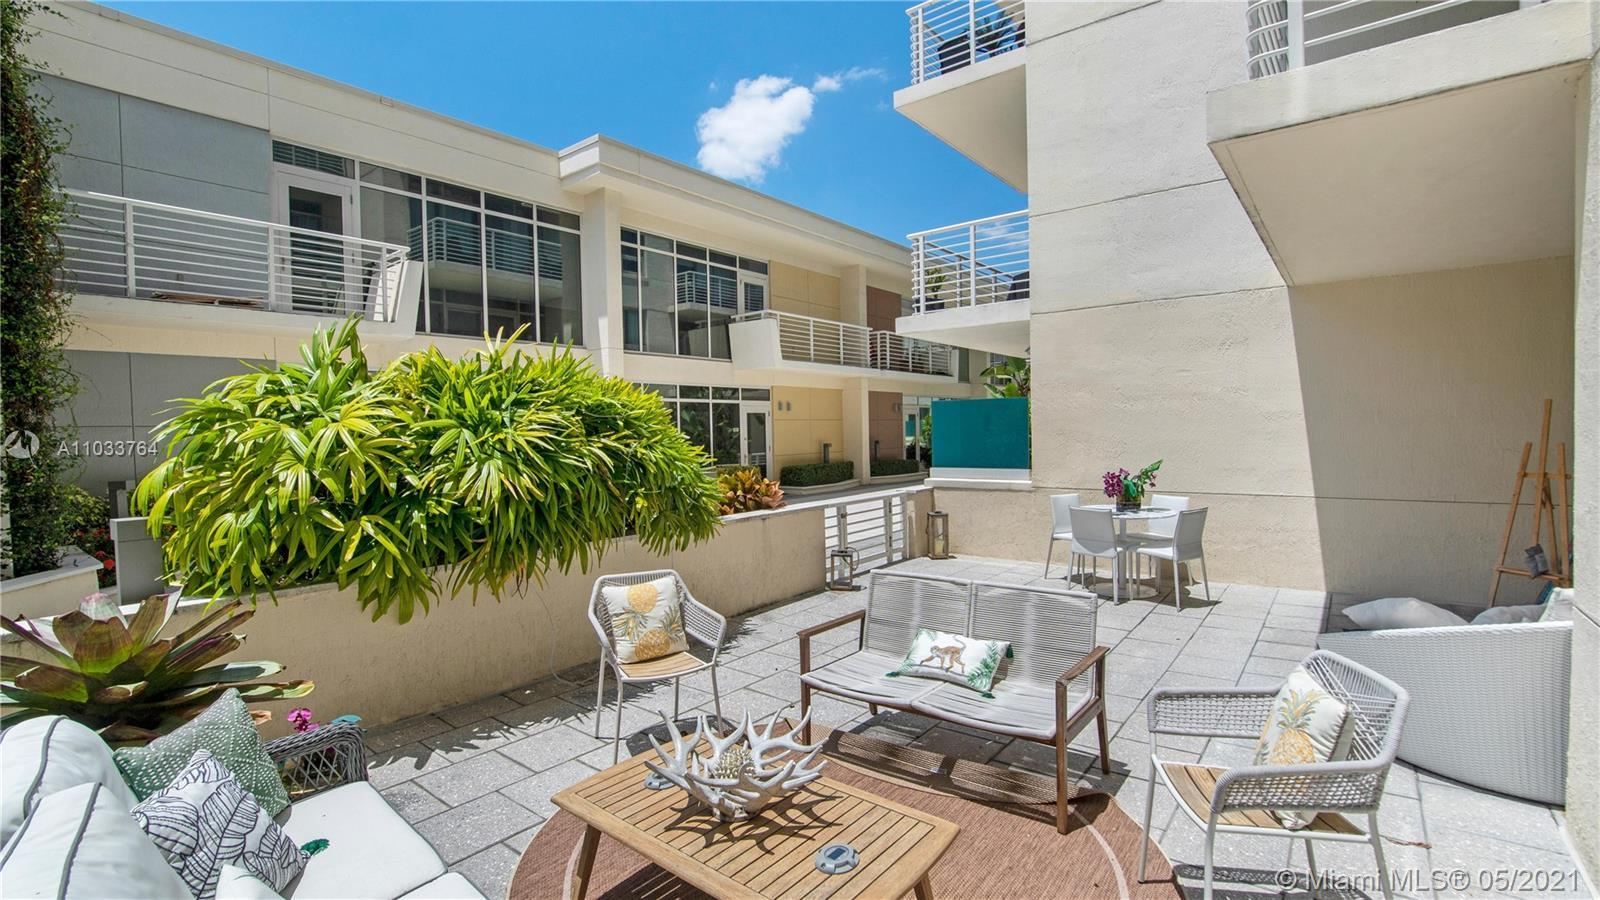 Welcome Home! Rare opportunity to own this 1Bedroom/1Bathroom apartment with a terrace over 300sqft.